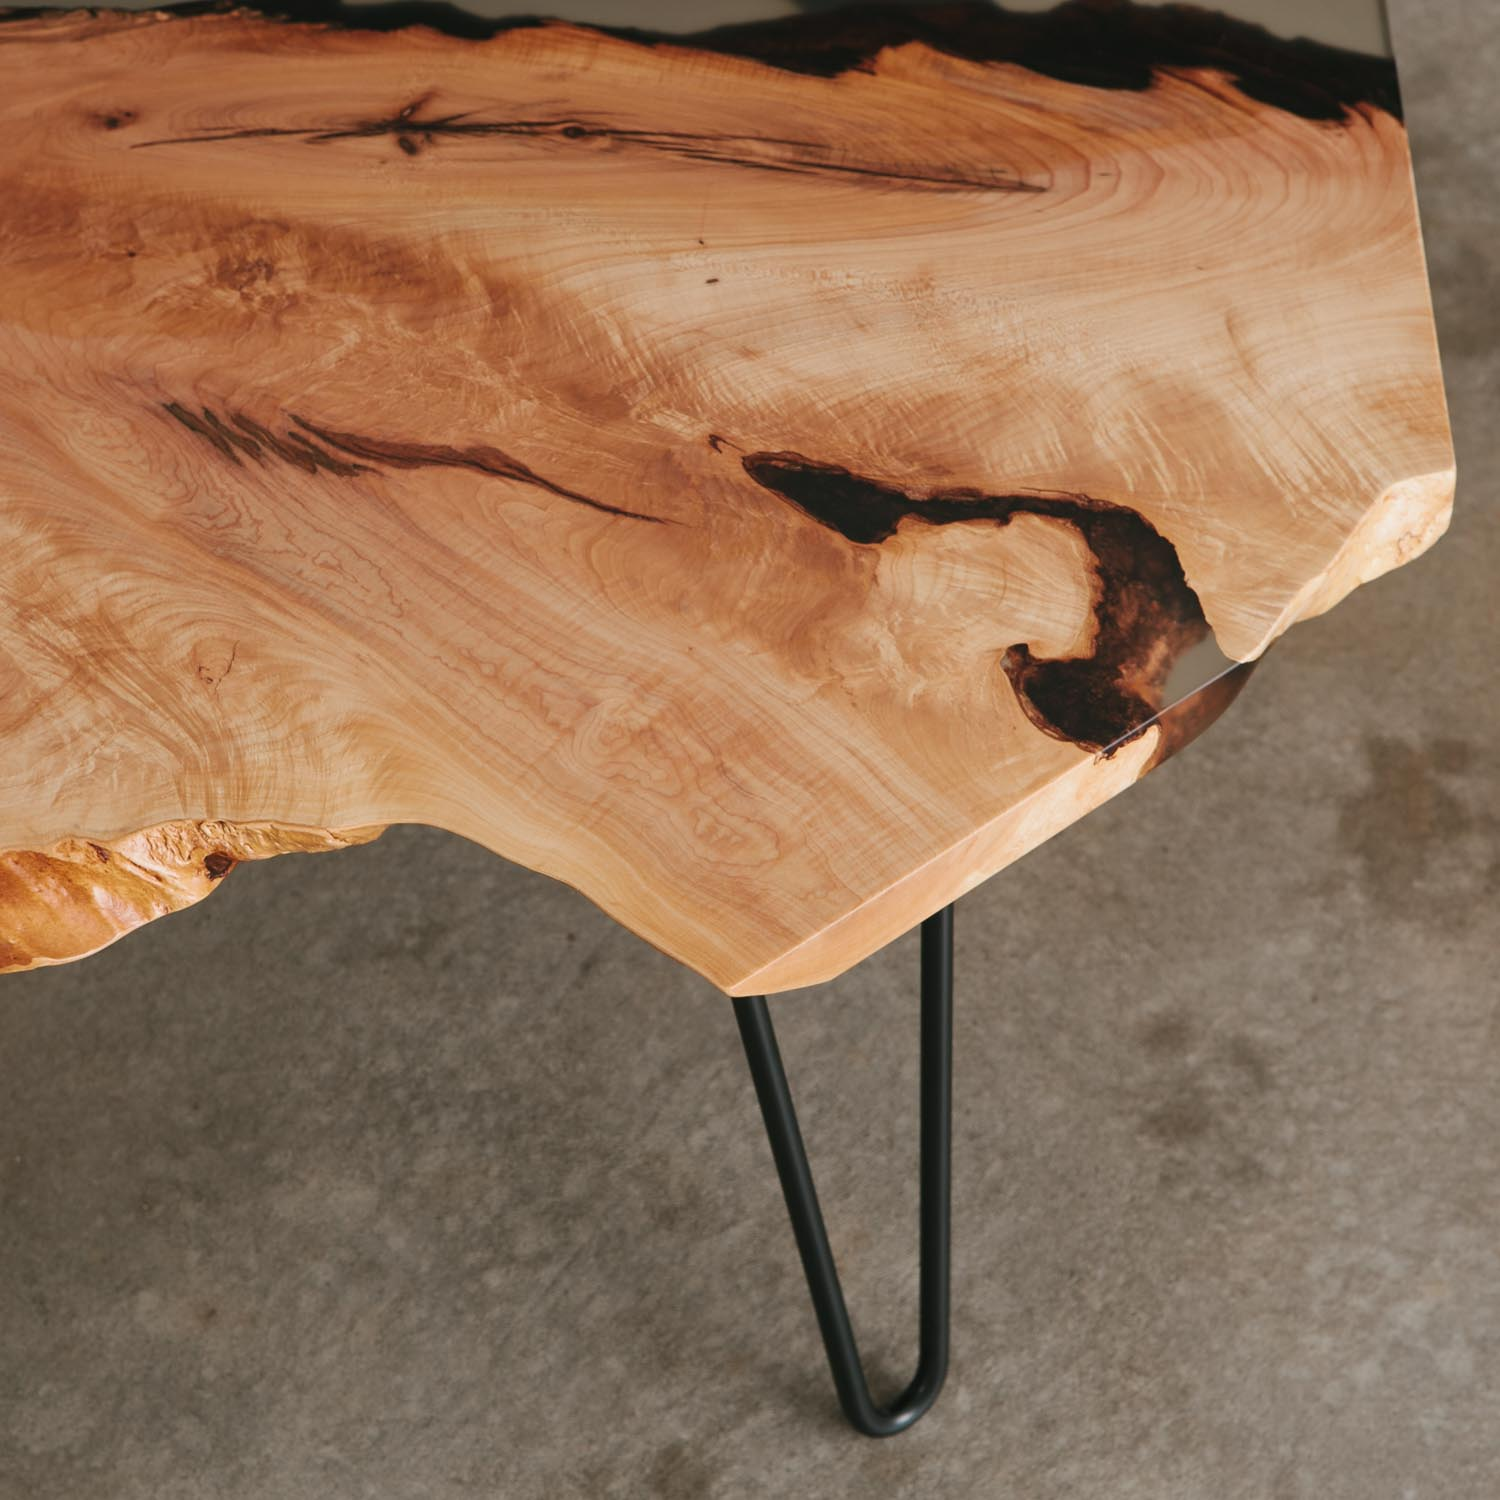 Maple side table with clear resin